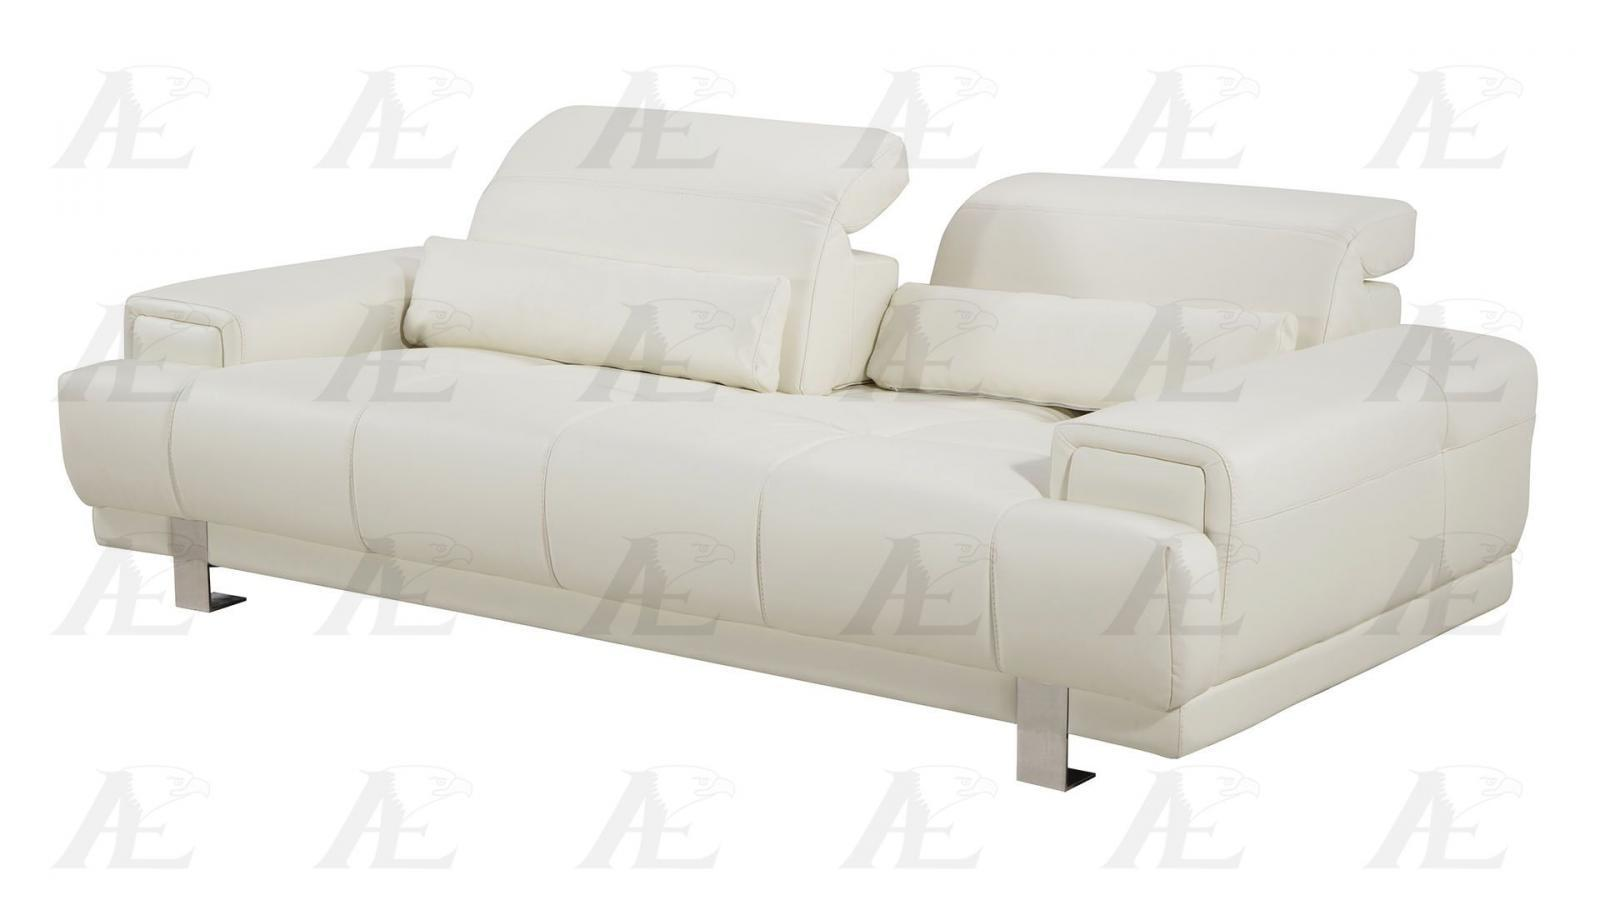 American Eagle AE606-IV Ivory Sofa Faux Leather